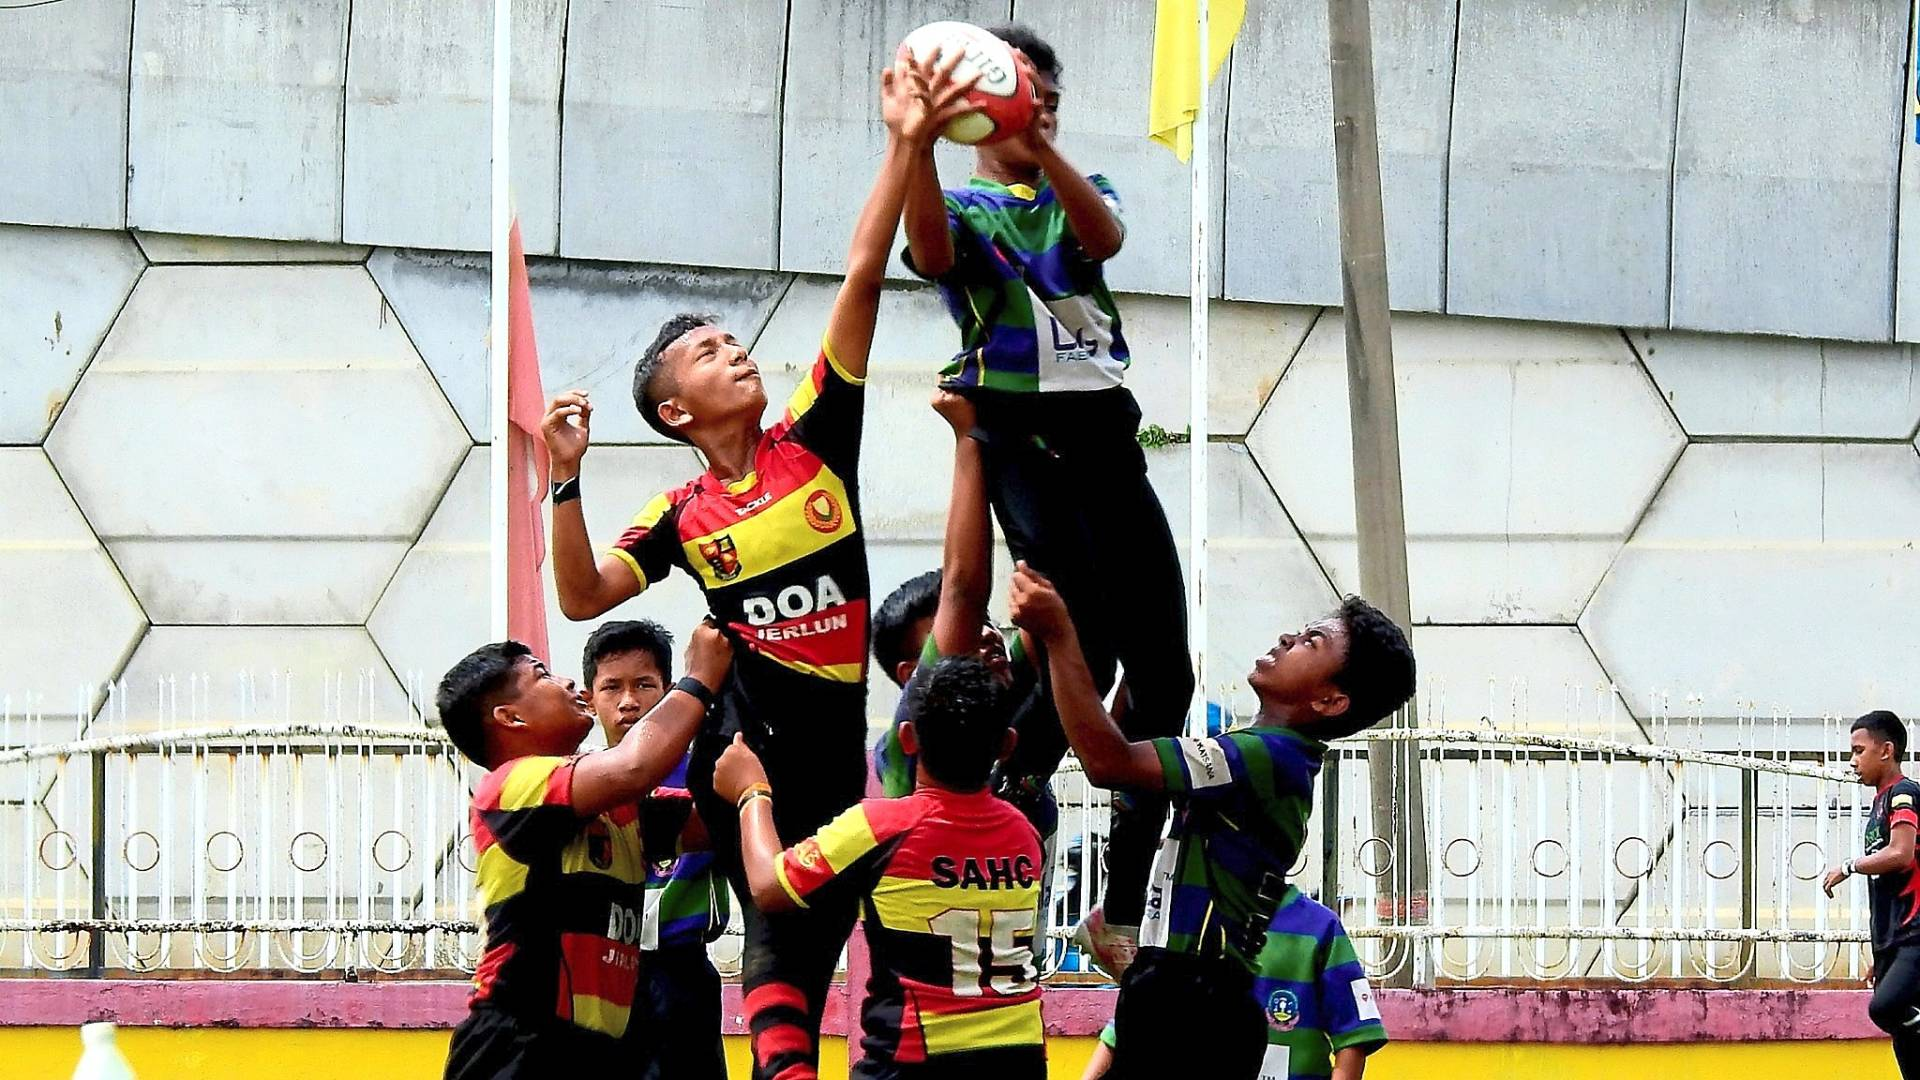 Schools play the main role in producing future athletes for the country and Aman Central hopes to assist them.